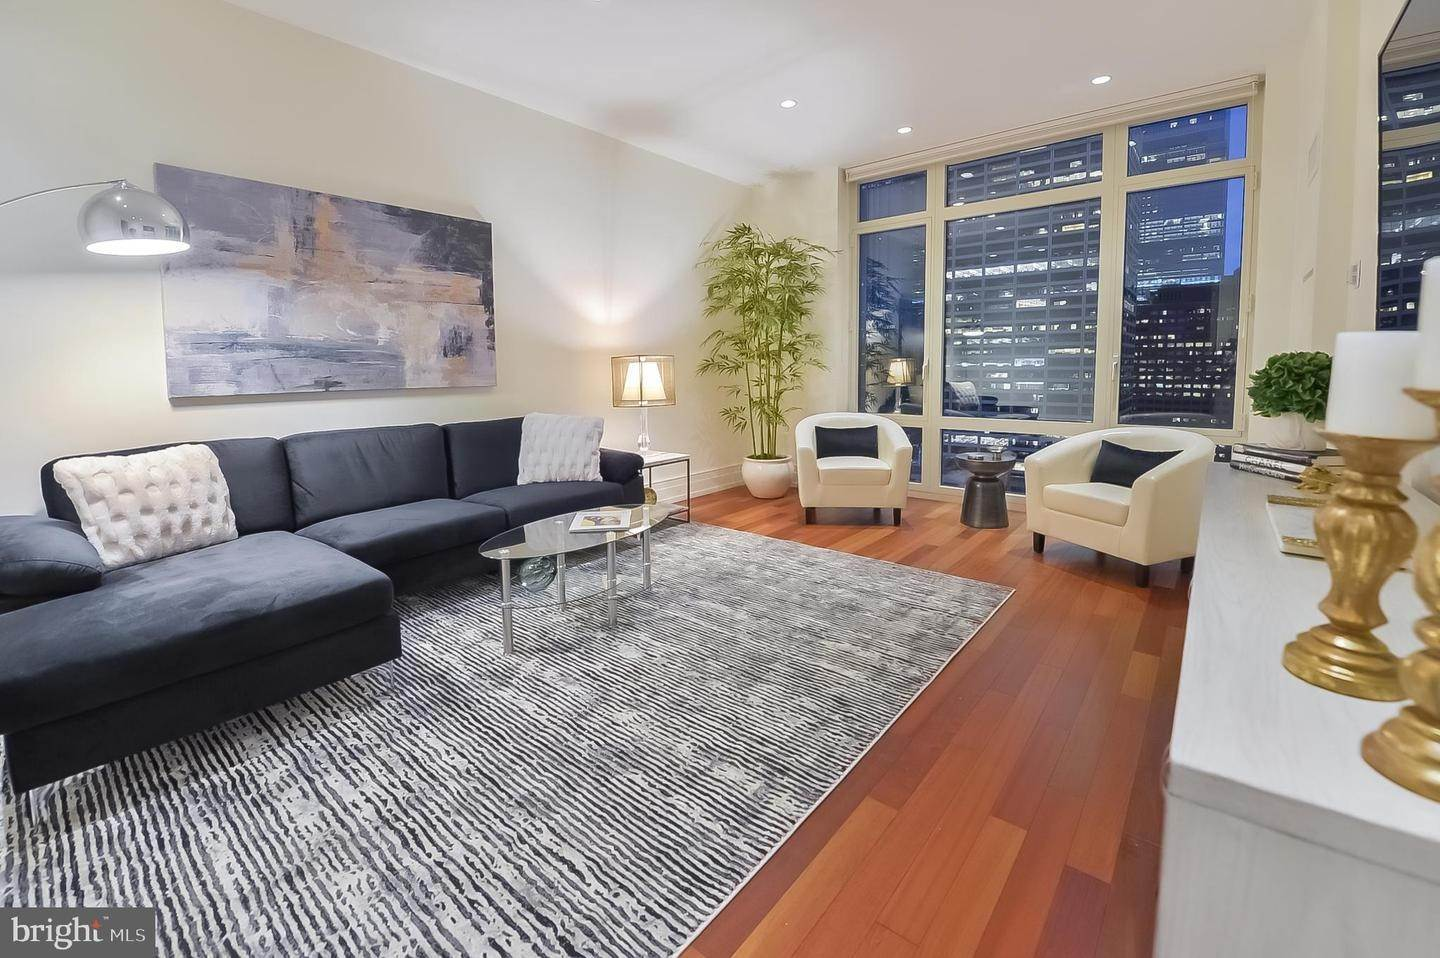 Condominiums for Sale at 130 S 18TH ST #2102 Philadelphia, Pennsylvania 19103 United States